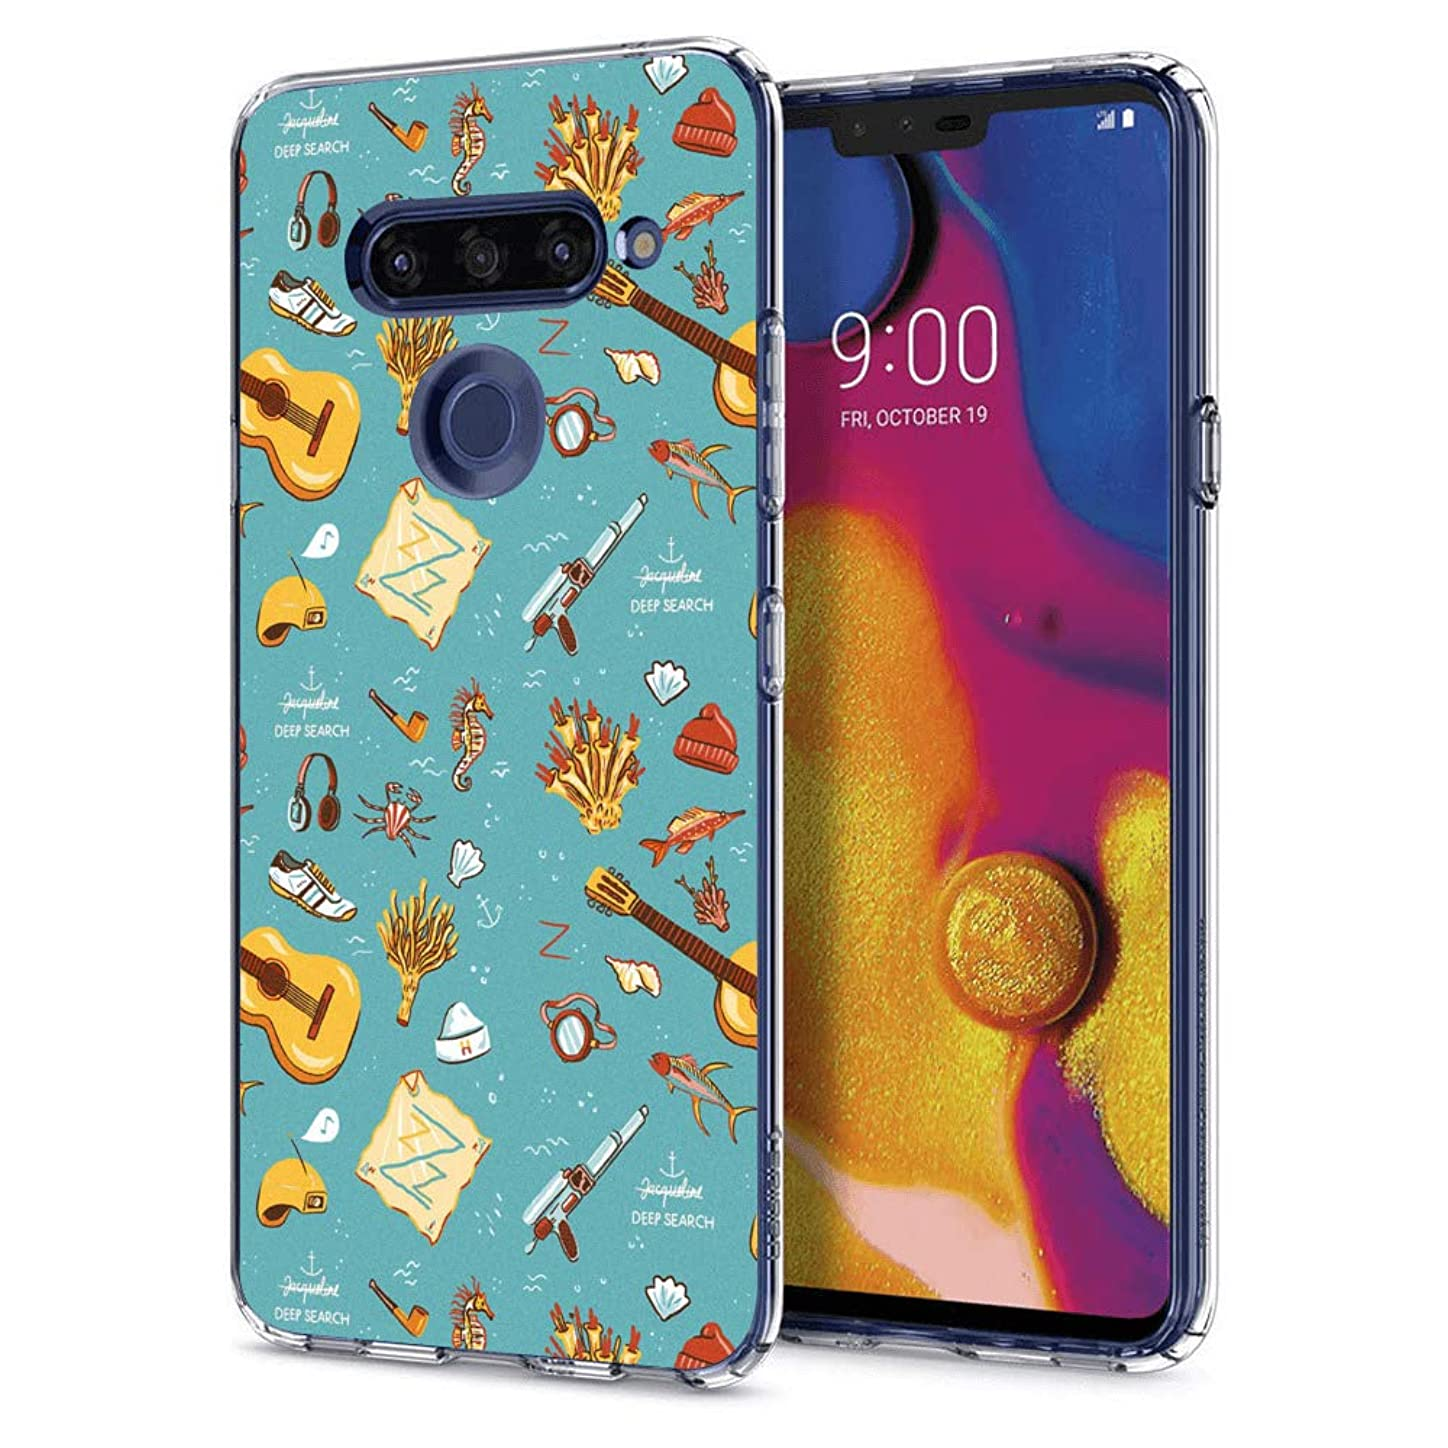 Slim Clear Guitar Ukulele Case for LG V40 ThinQ Customized Design Soft TPU and Rubber Flexible Durable Shockproof LG V40 ThinQ Protective Case-Anti-Slippery hvsgojf287950